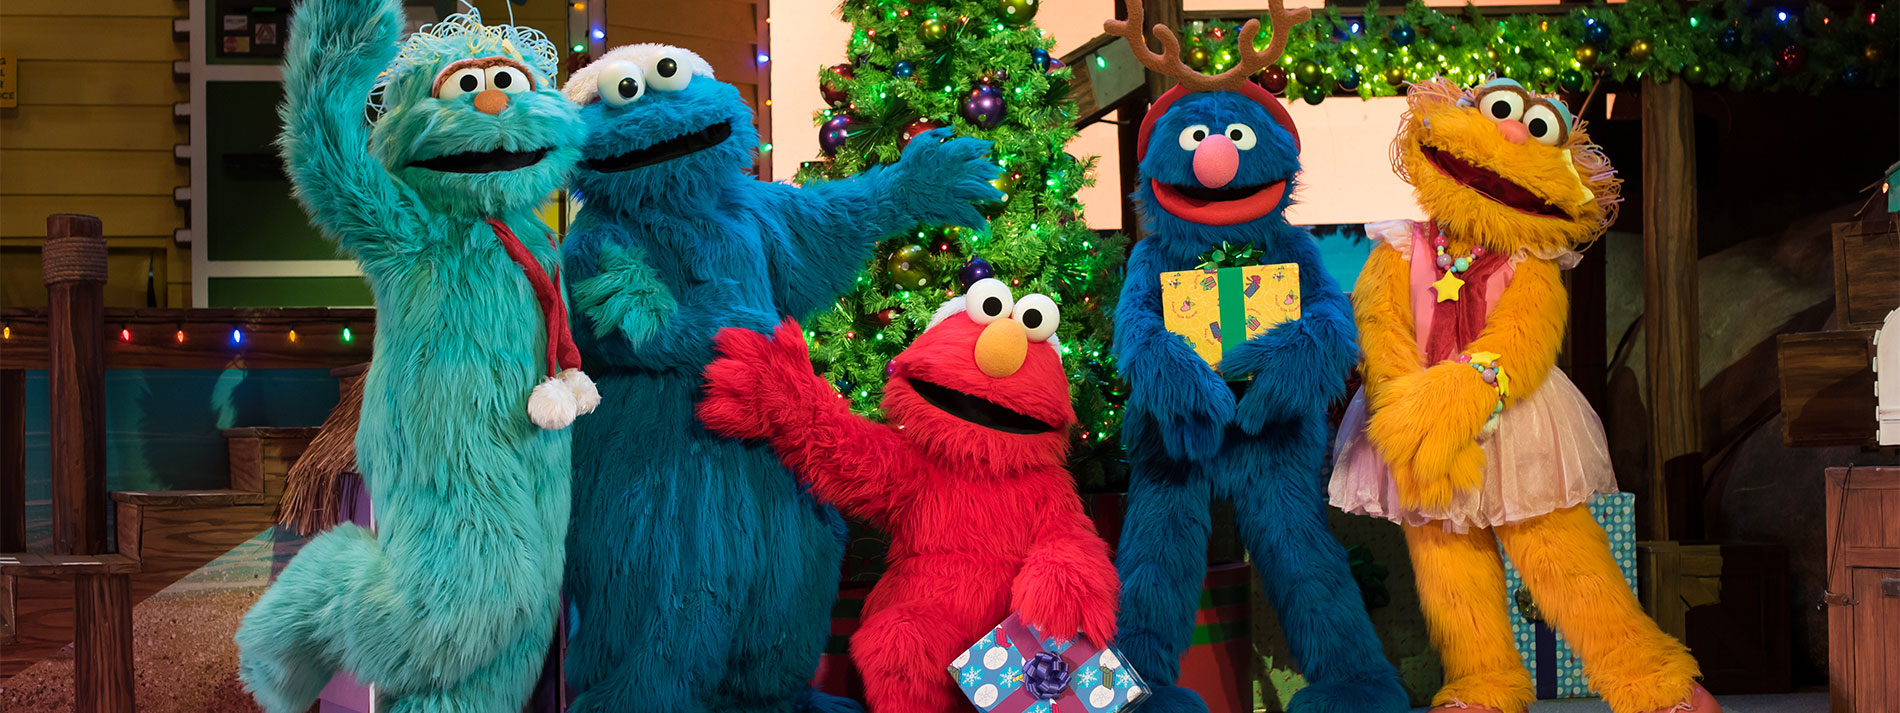 Sesame Street Christmas Show at SeaWorld San Antonio